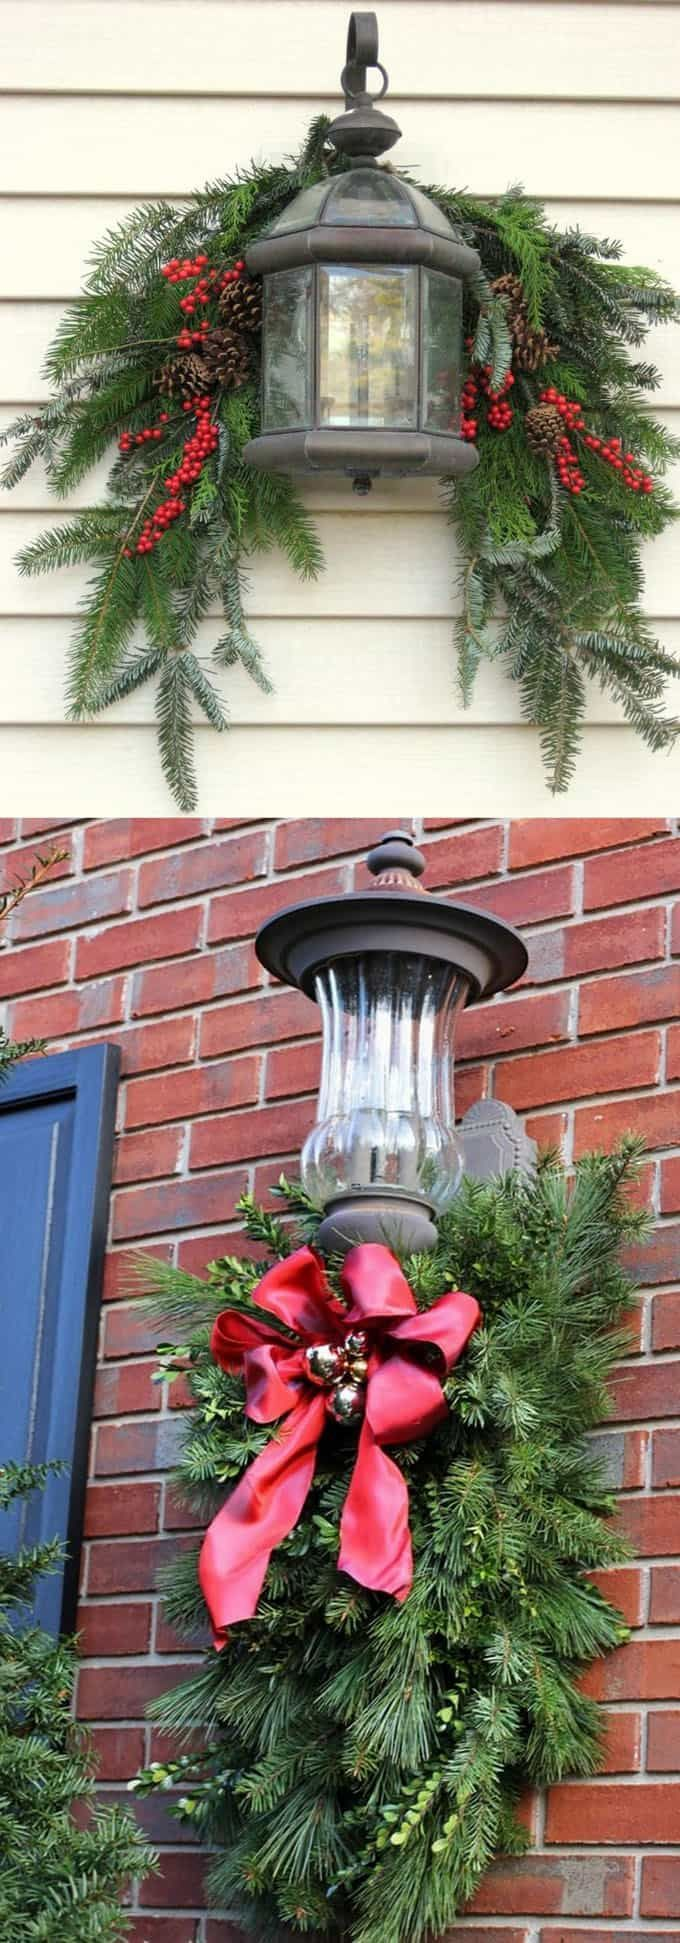 32 beautiful Christmas porches amp; front doors: how to create gorgeous and playful DIY outdoor Christmas decorations such as garlands, wreaths, lights, ornaments, Christmas pots, and more! - A Piece of Rainbow lighting